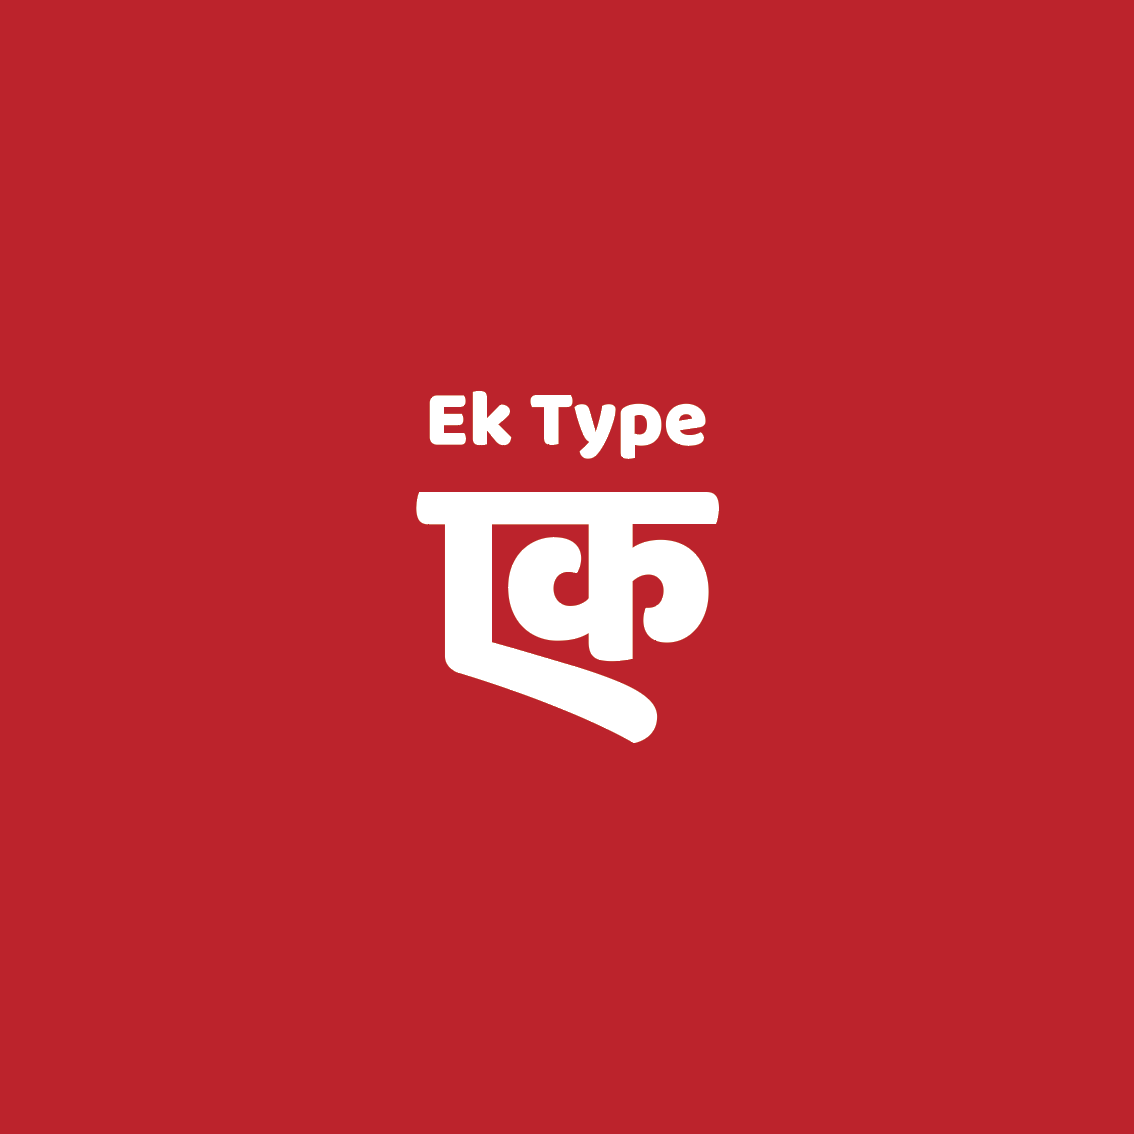 Ek Type is a collective of type designers from India.